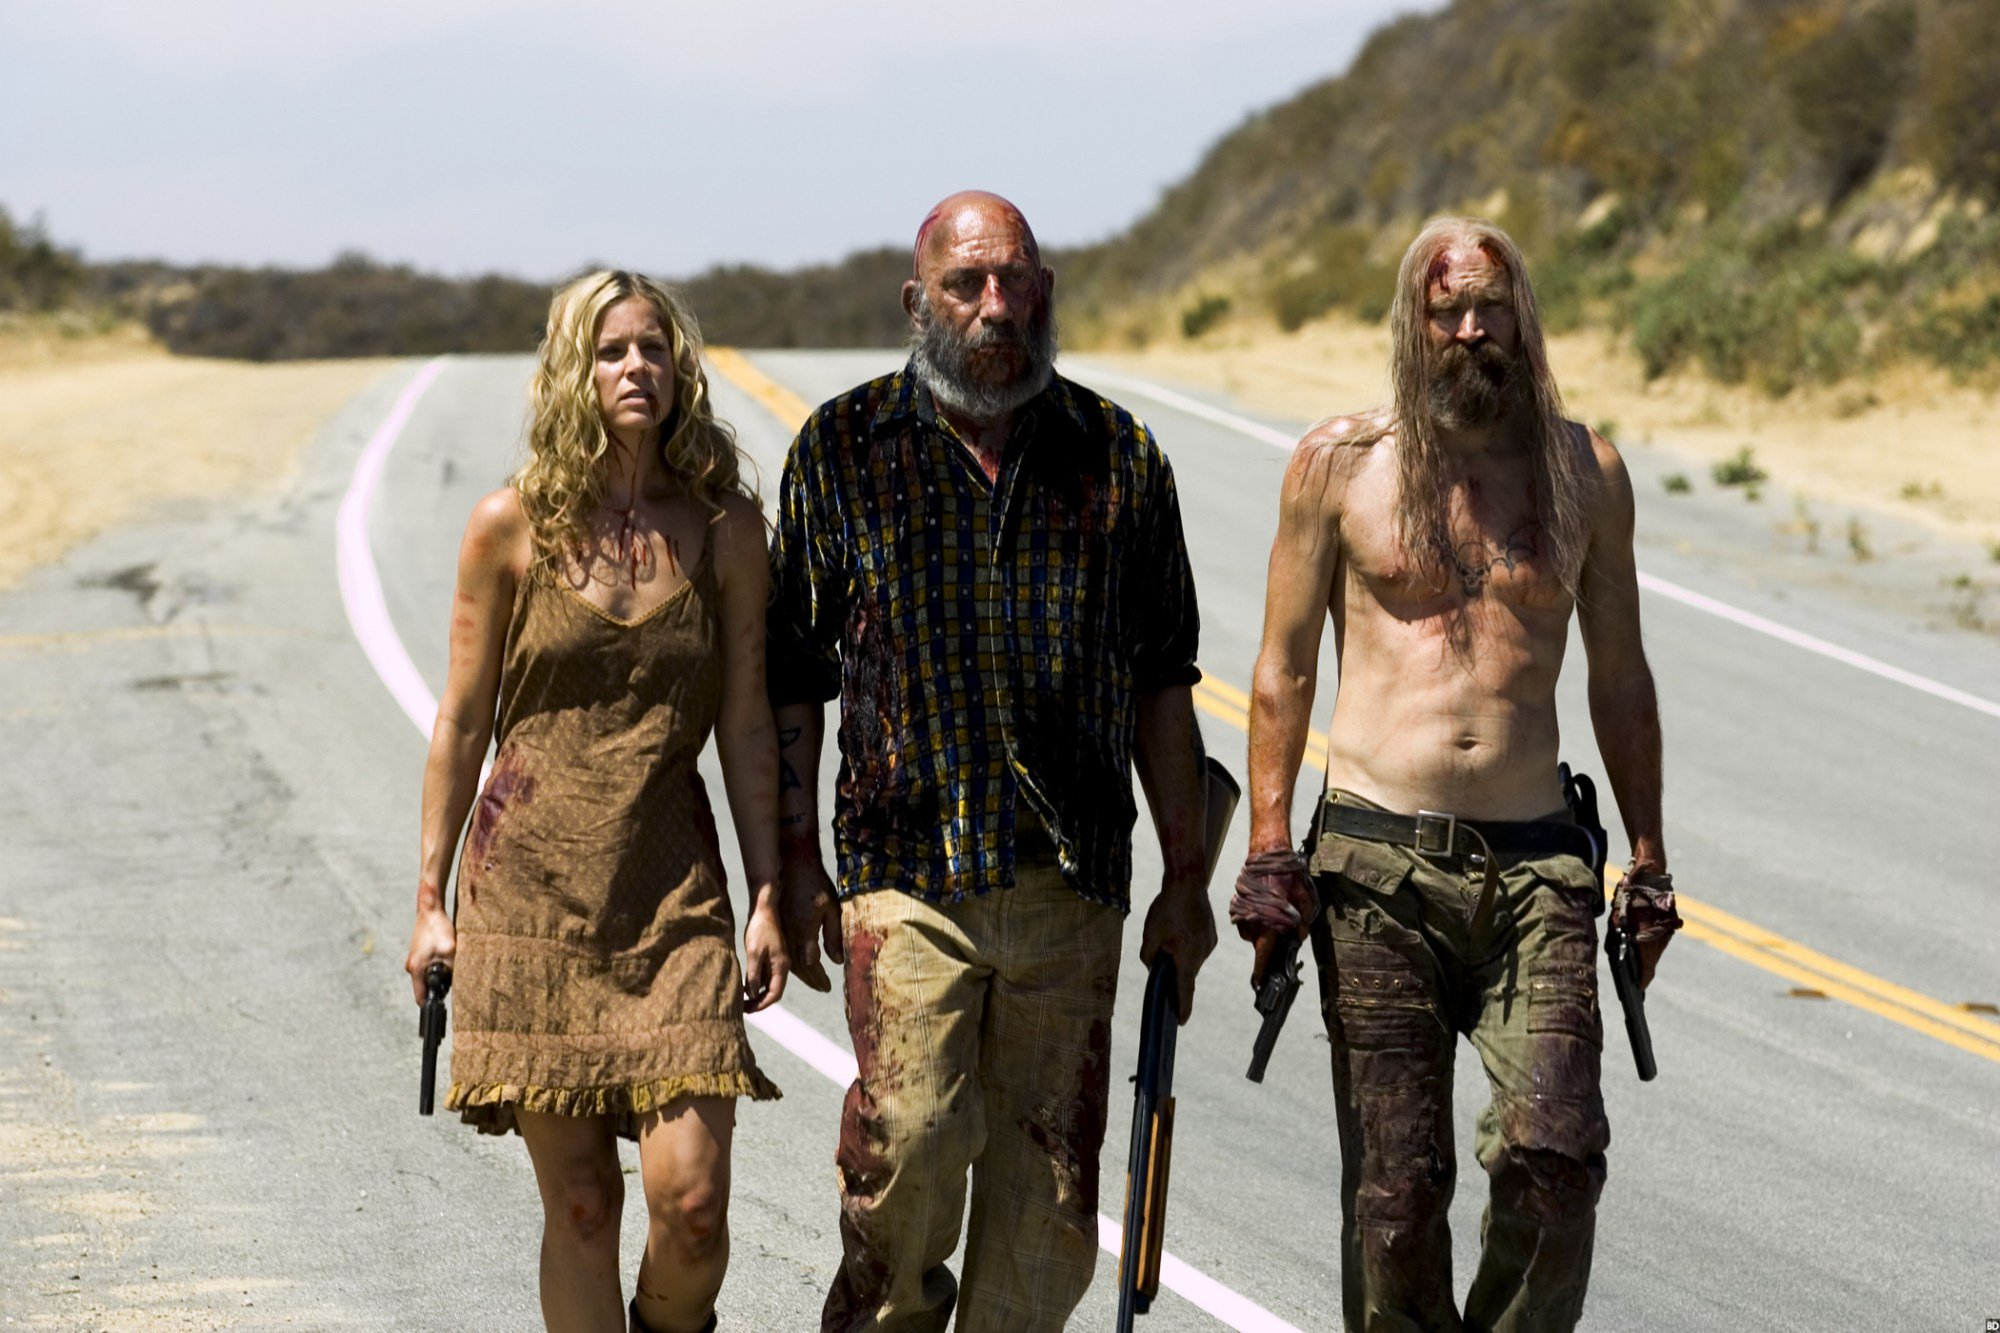 Confirmed! @RobZombie is now filming his 'The Devil's Rejects' sequel, '3 From Hell'!  https://t.co/hd37LISOOZ https://t.co/FnjWe0cT8F